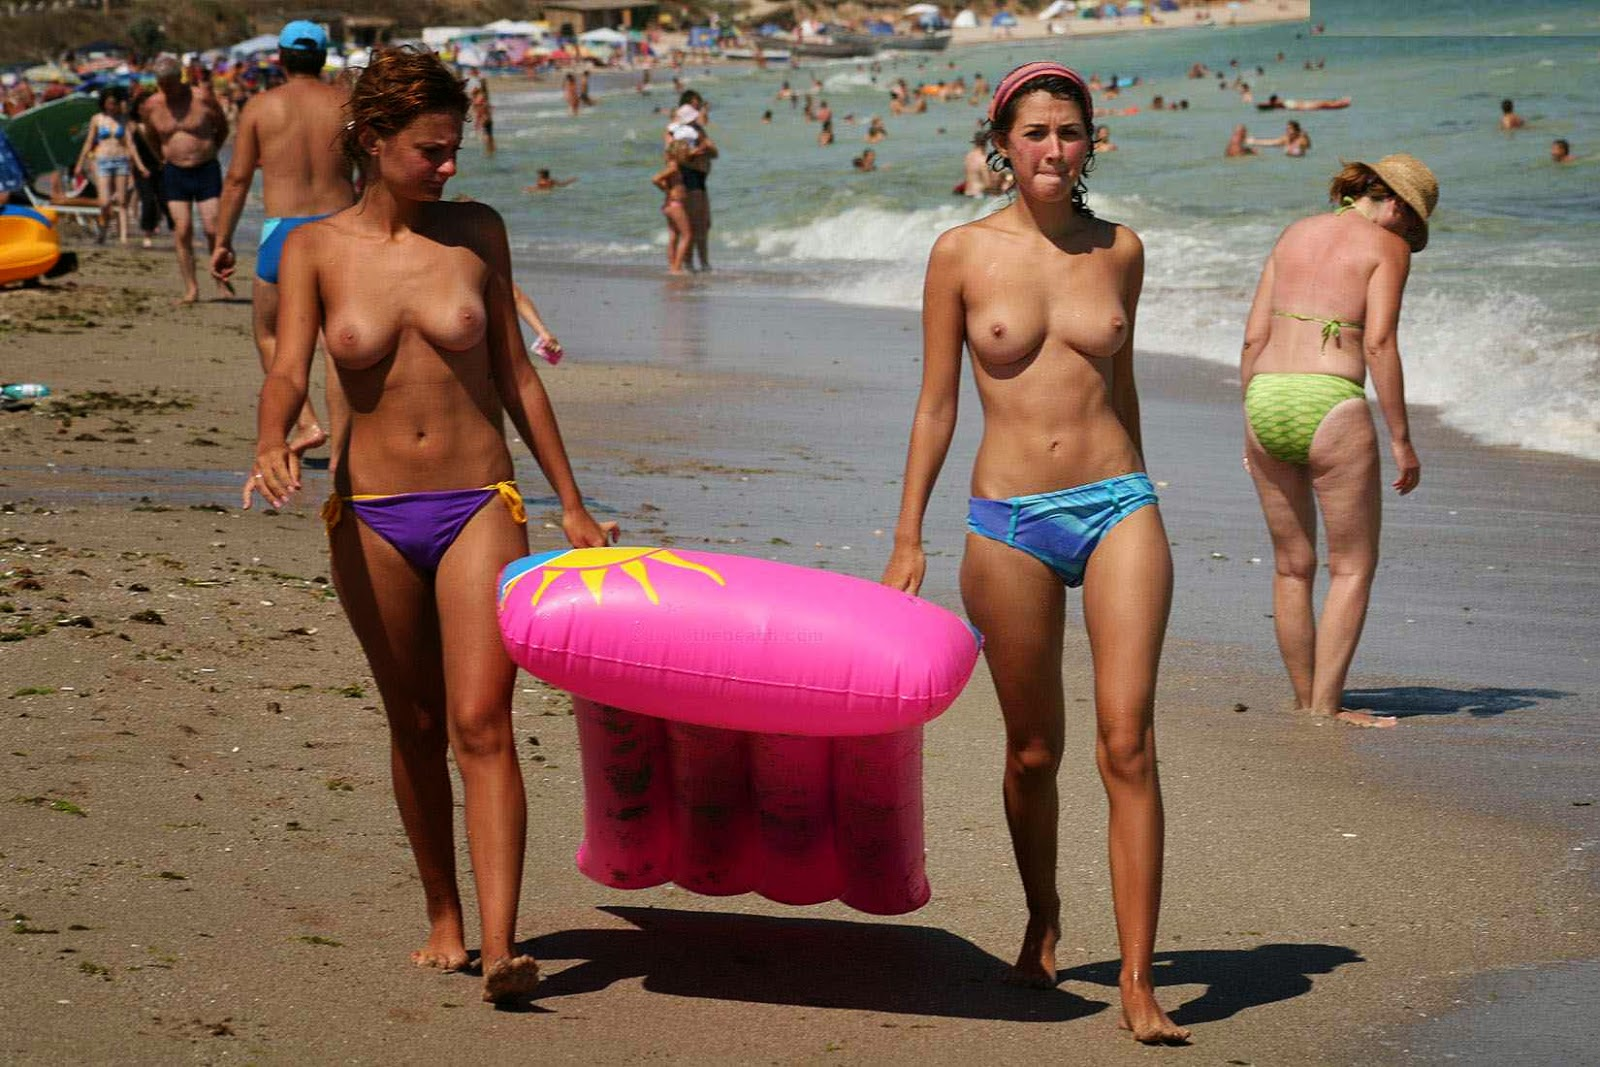 Hot Girls On A Nude Beach